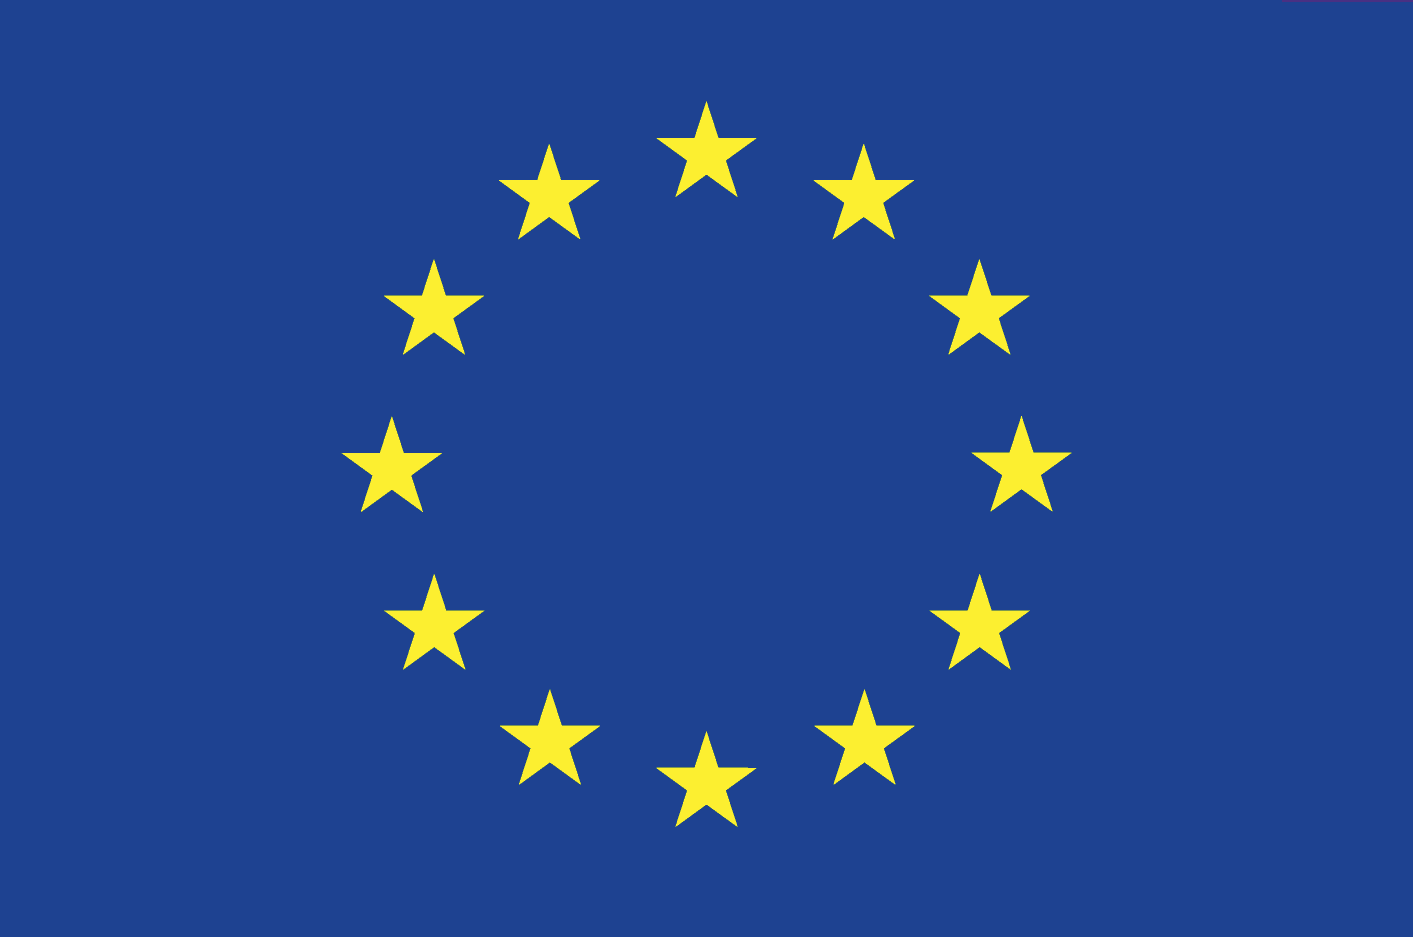 EU flag. Illustration.